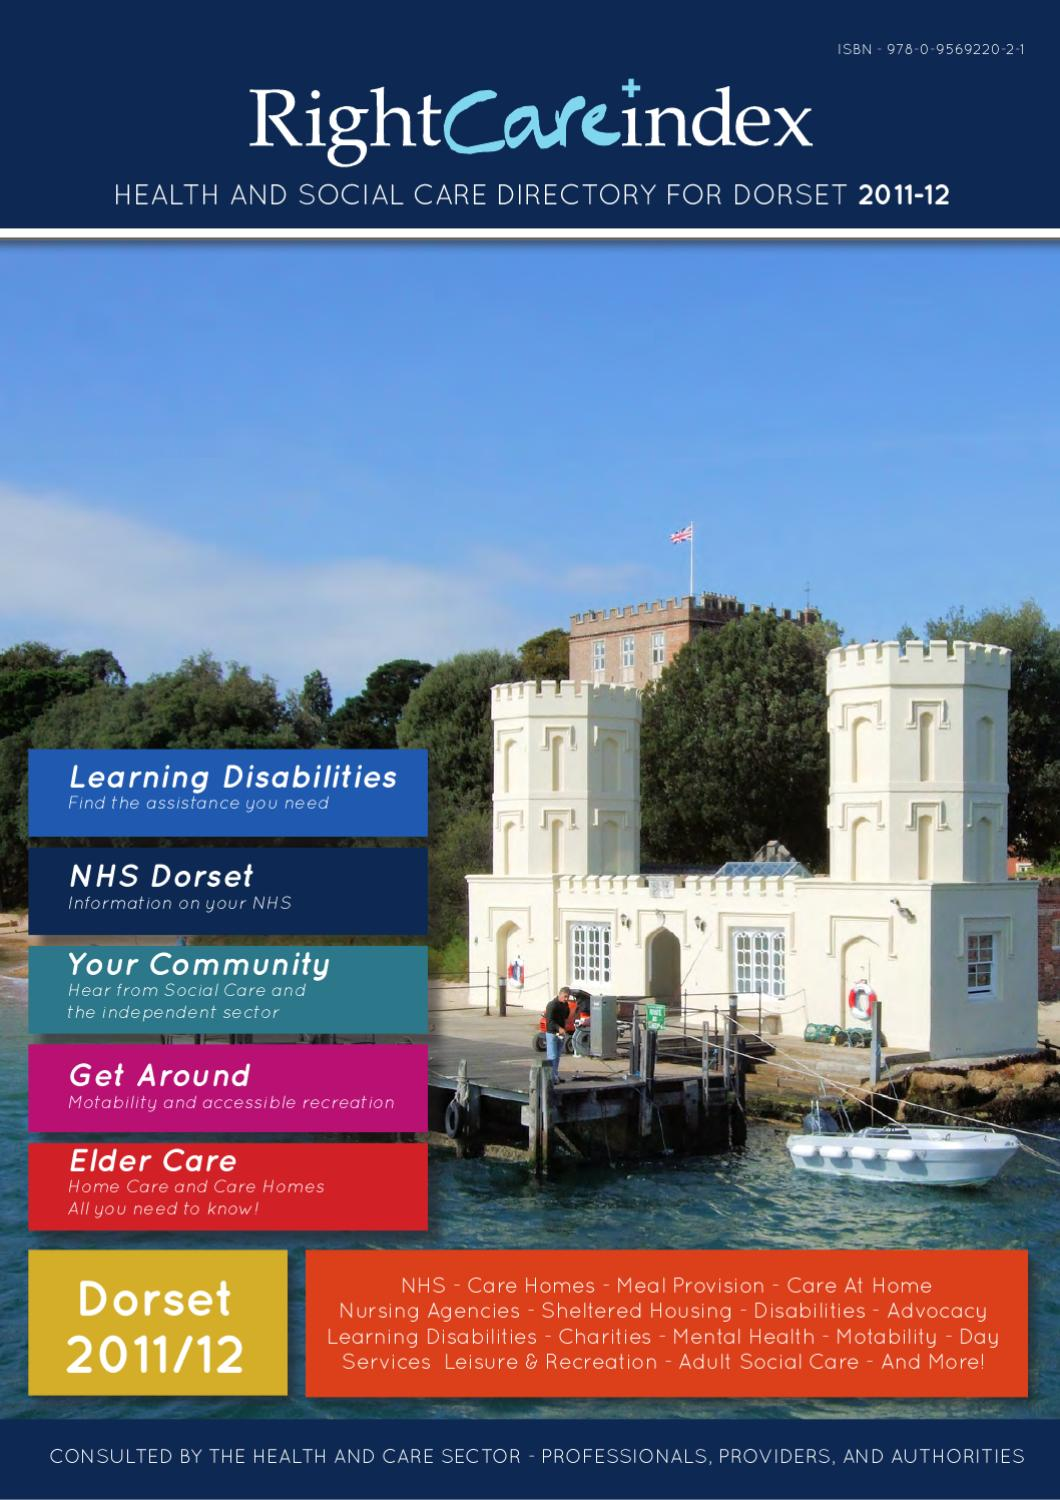 RightCareIndex For Dorset 2011 12 By